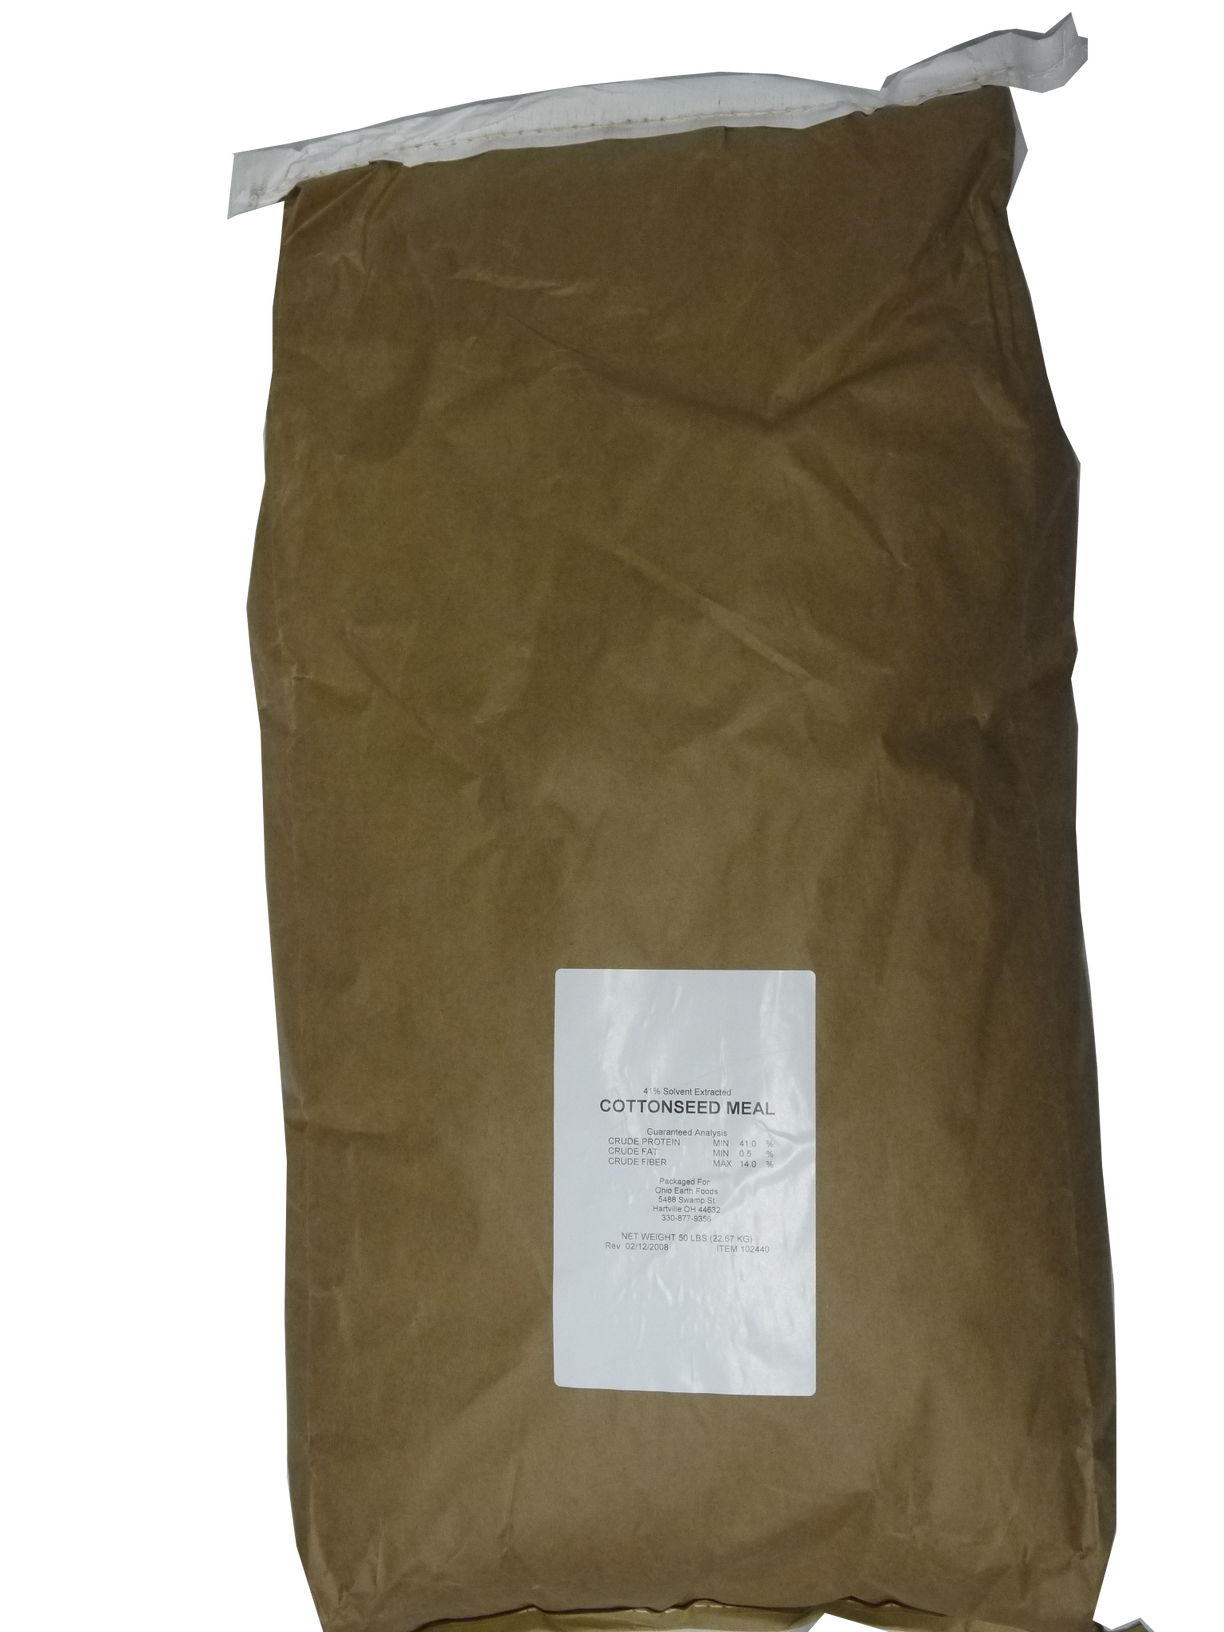 COTTON SEED MEAL* 50# bag